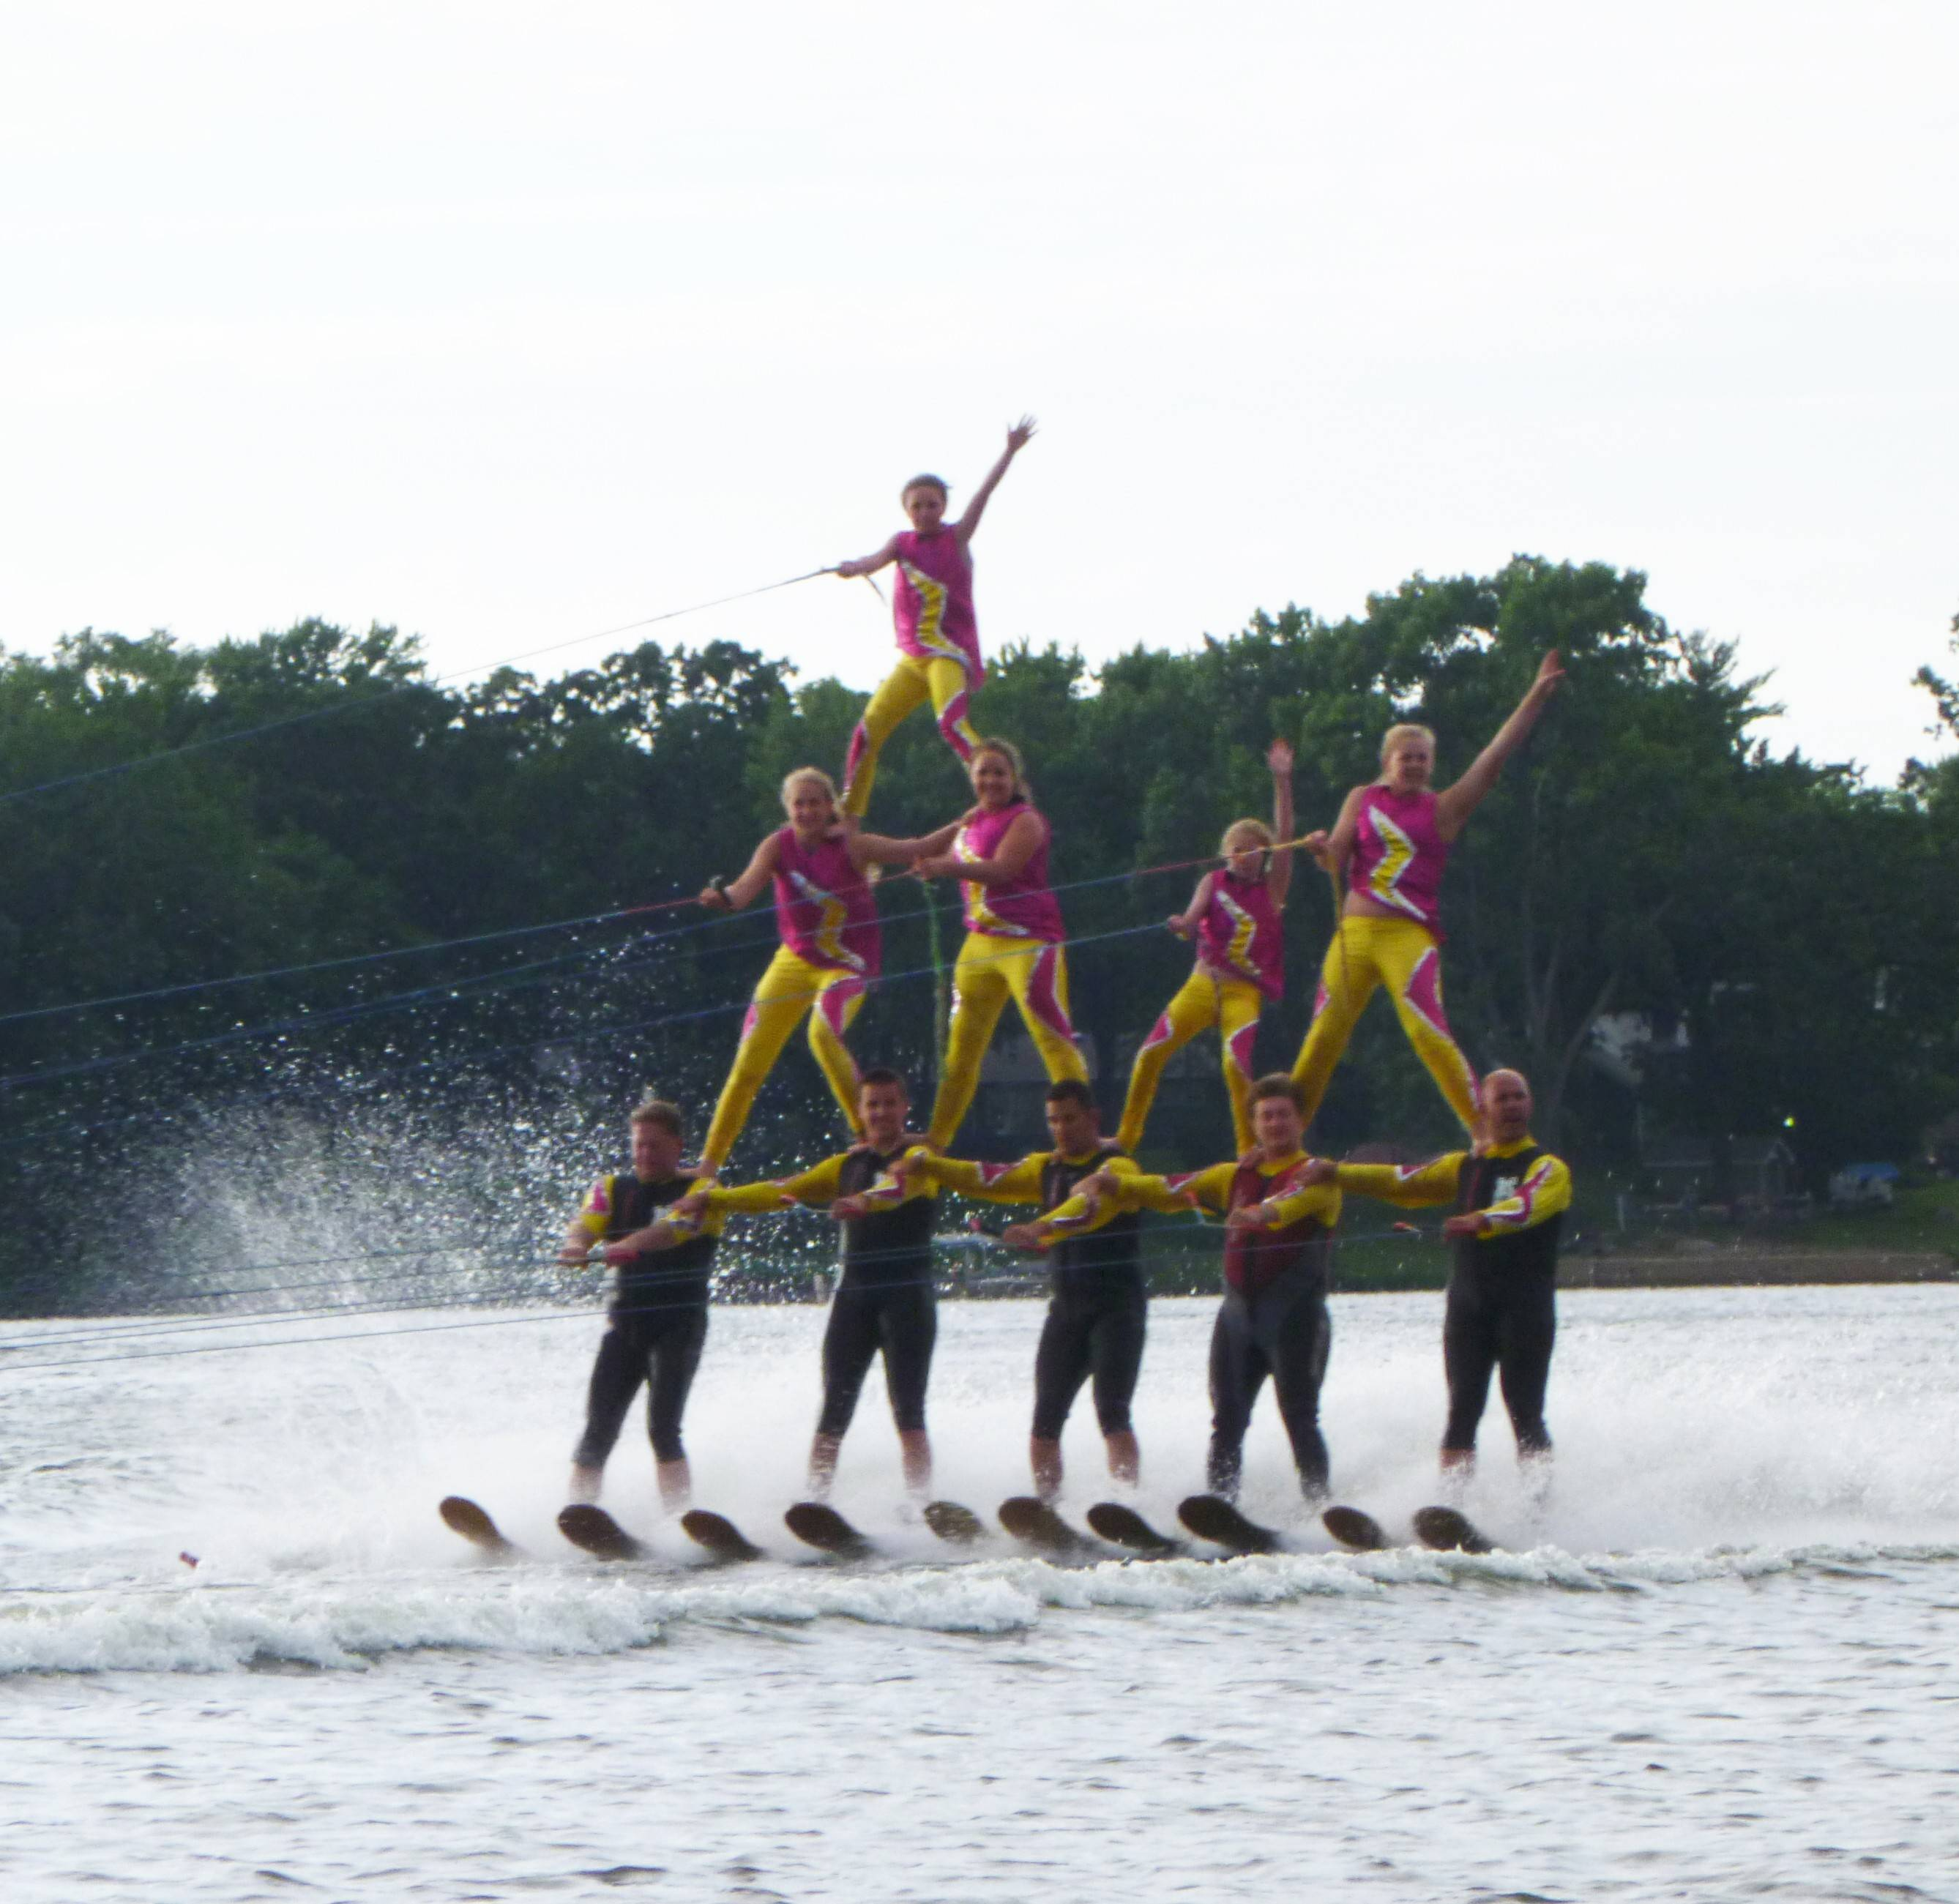 The Wonder Lake Ski Show Team will perform at the Beach Bash at Diamond Lake Beach in Mundelein. The event will also include a sand castle contest, a youth Ninja Warrior course, a Cardboard Regatta and more.